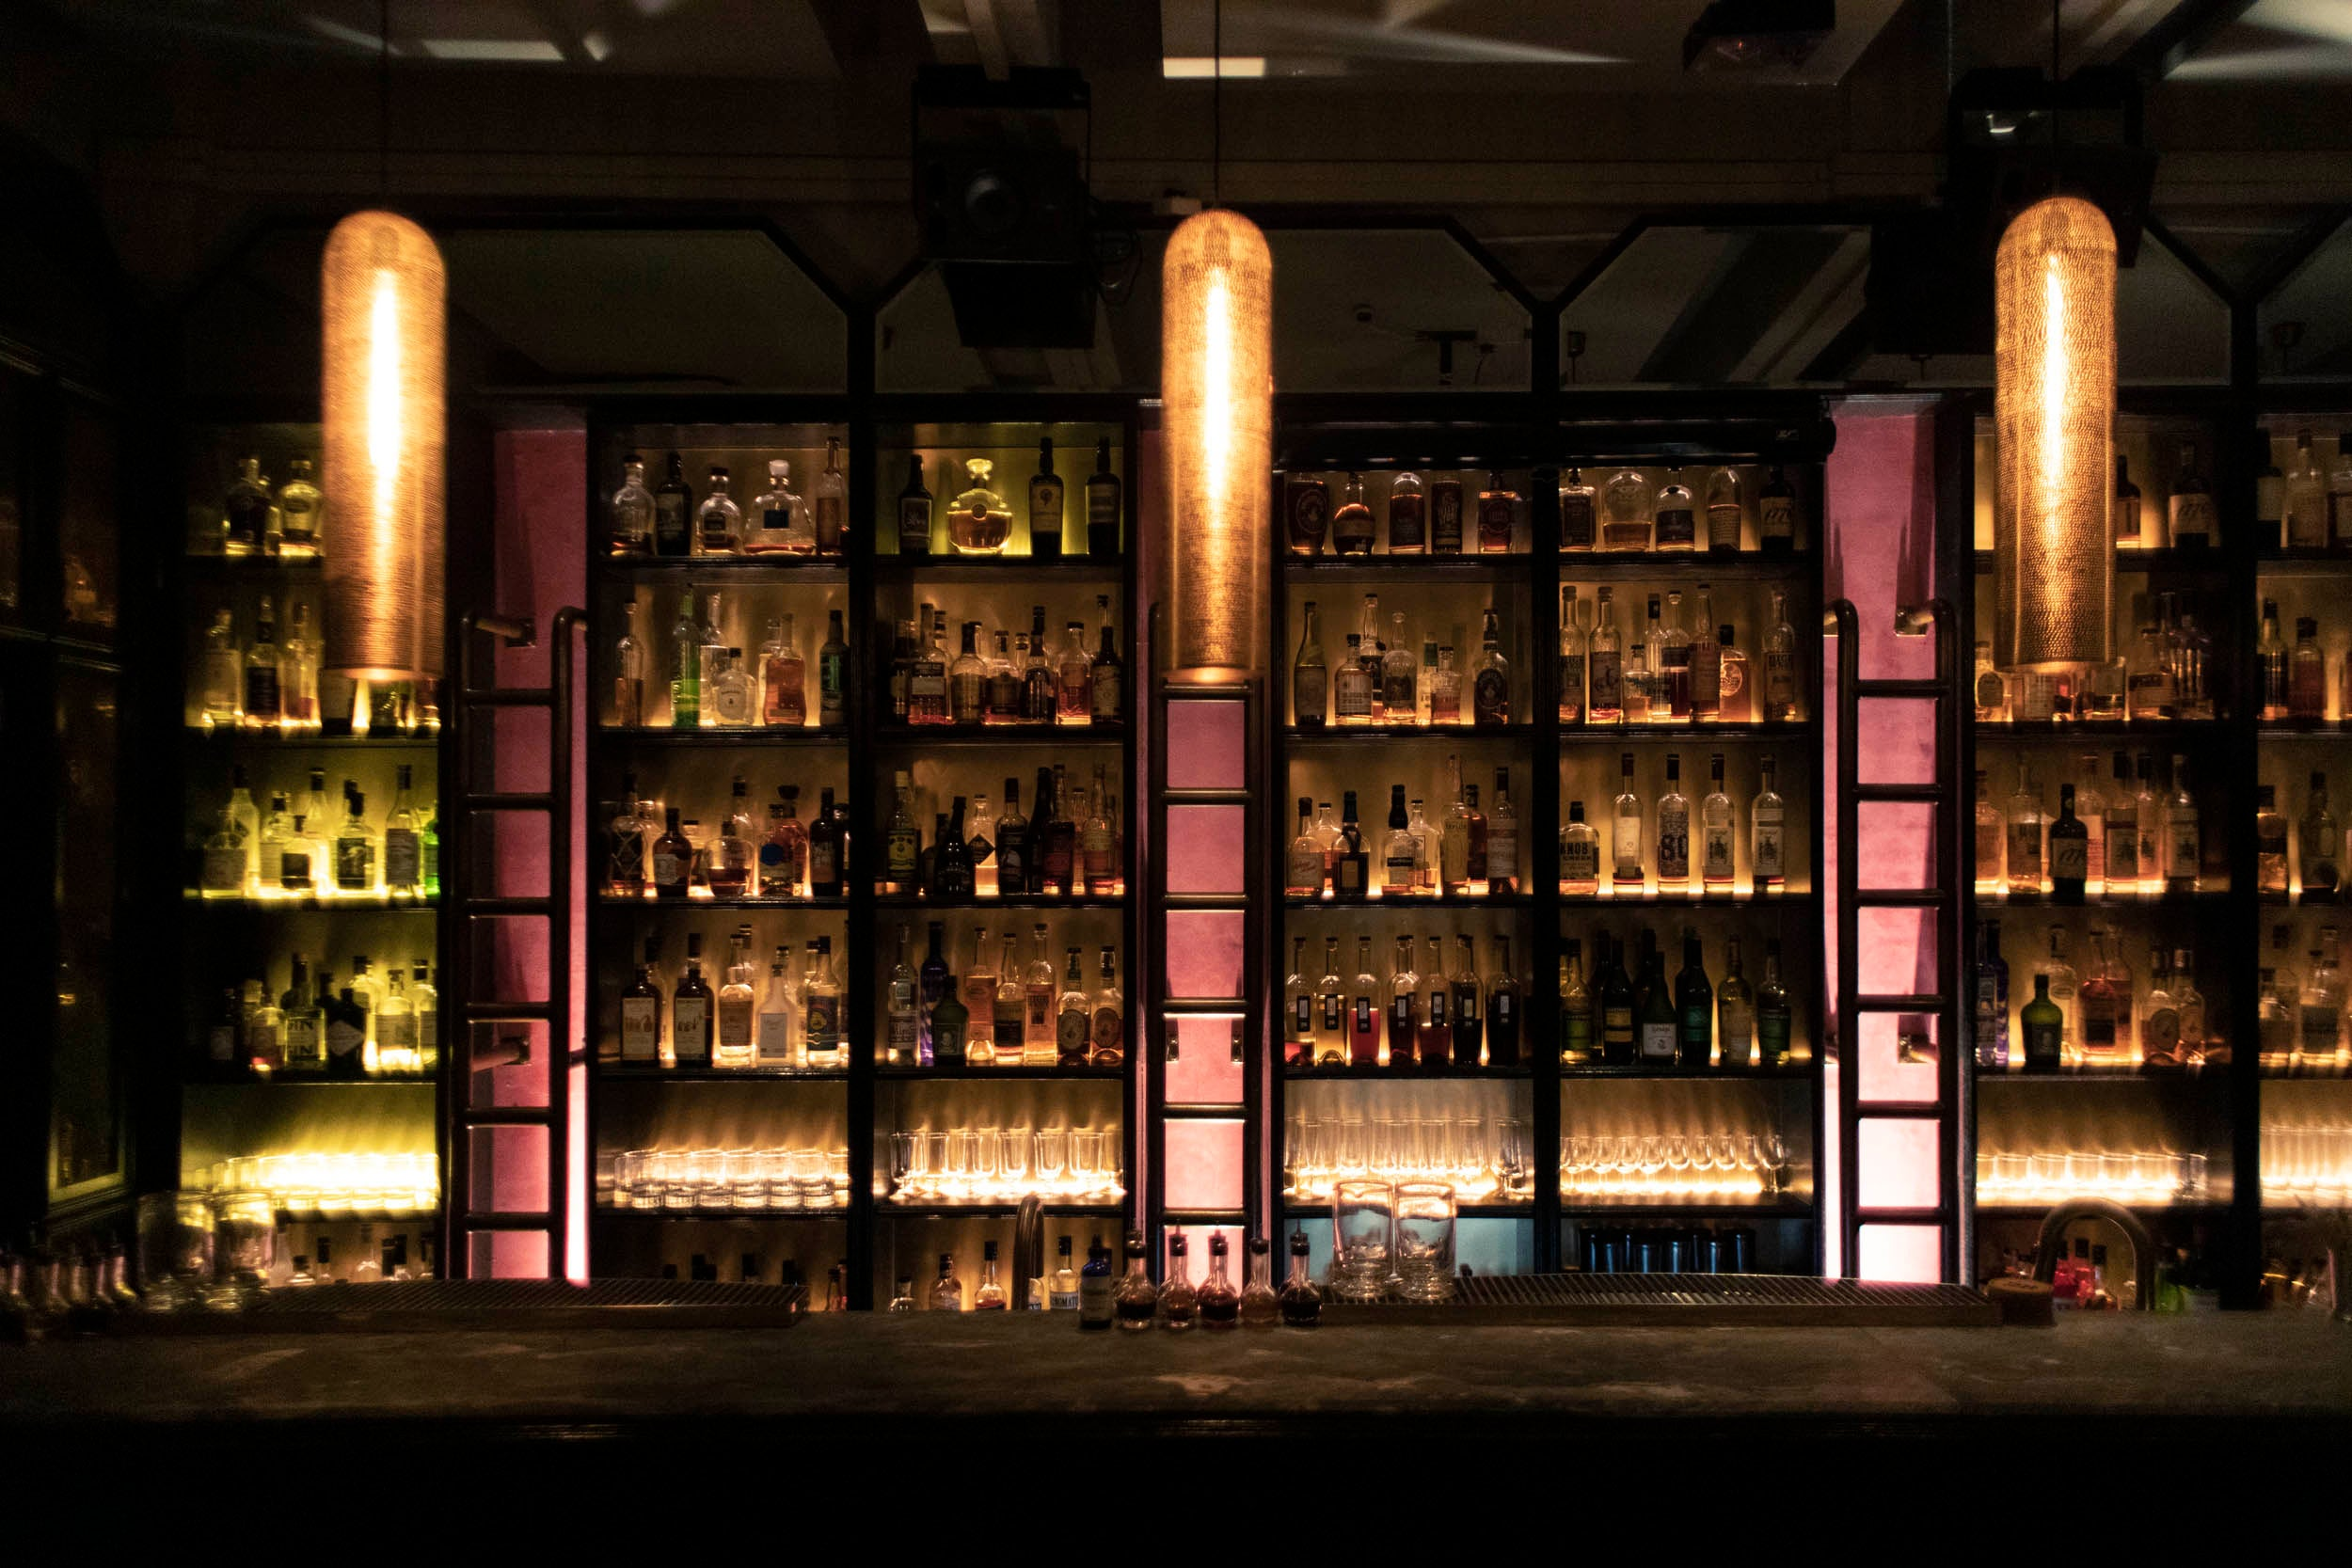 28 HongKong Street in Singapore: reviews, address | World's Best Bars